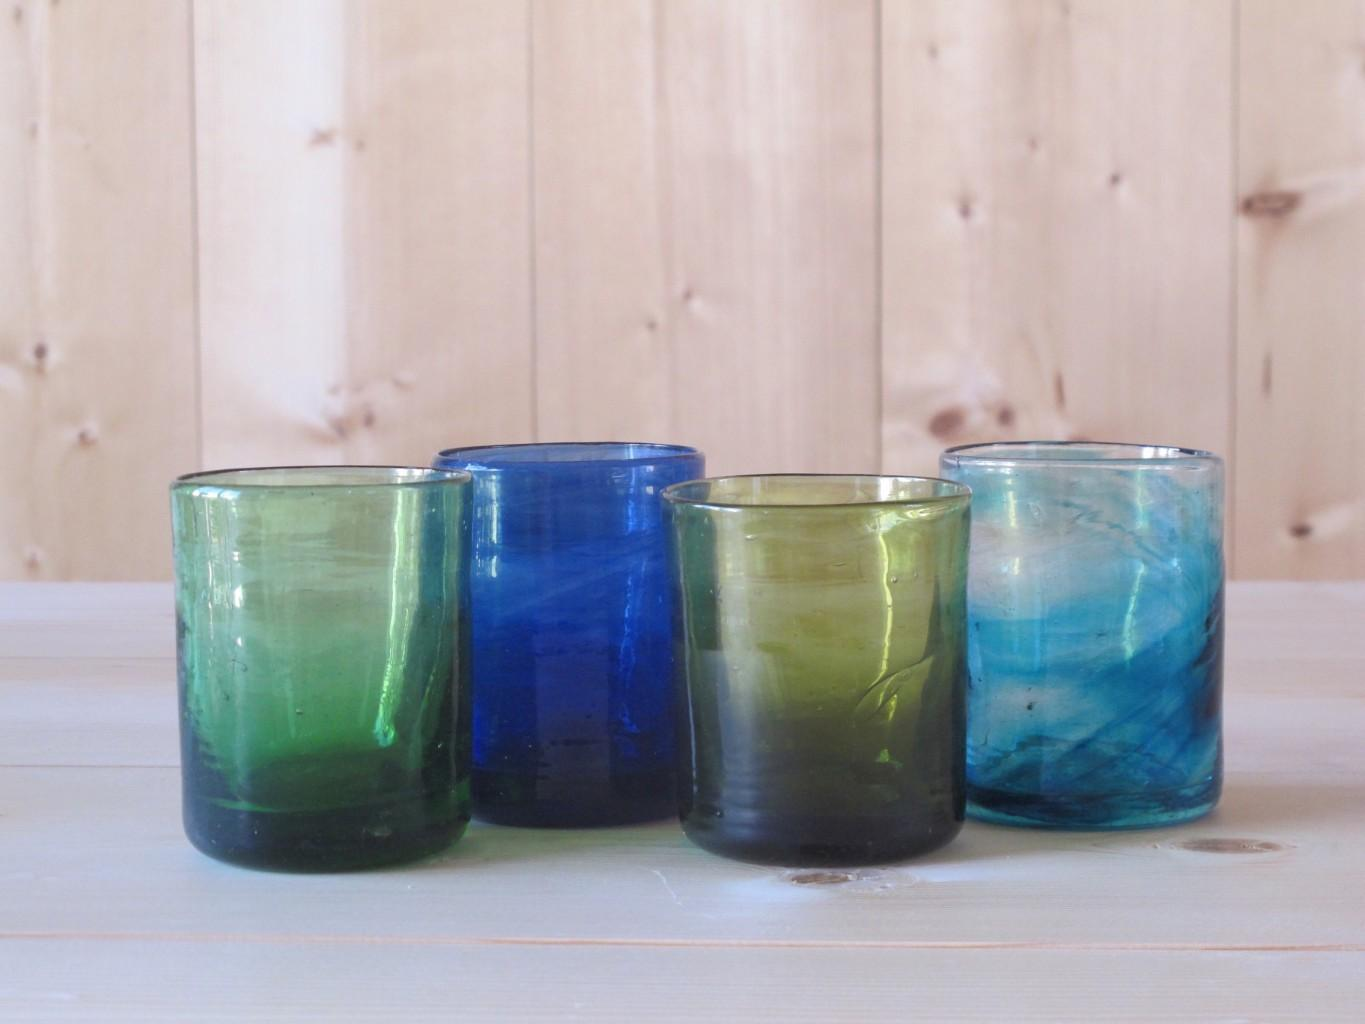 L to R : Murano Moyen Green, Blue, Olive, Turquoise